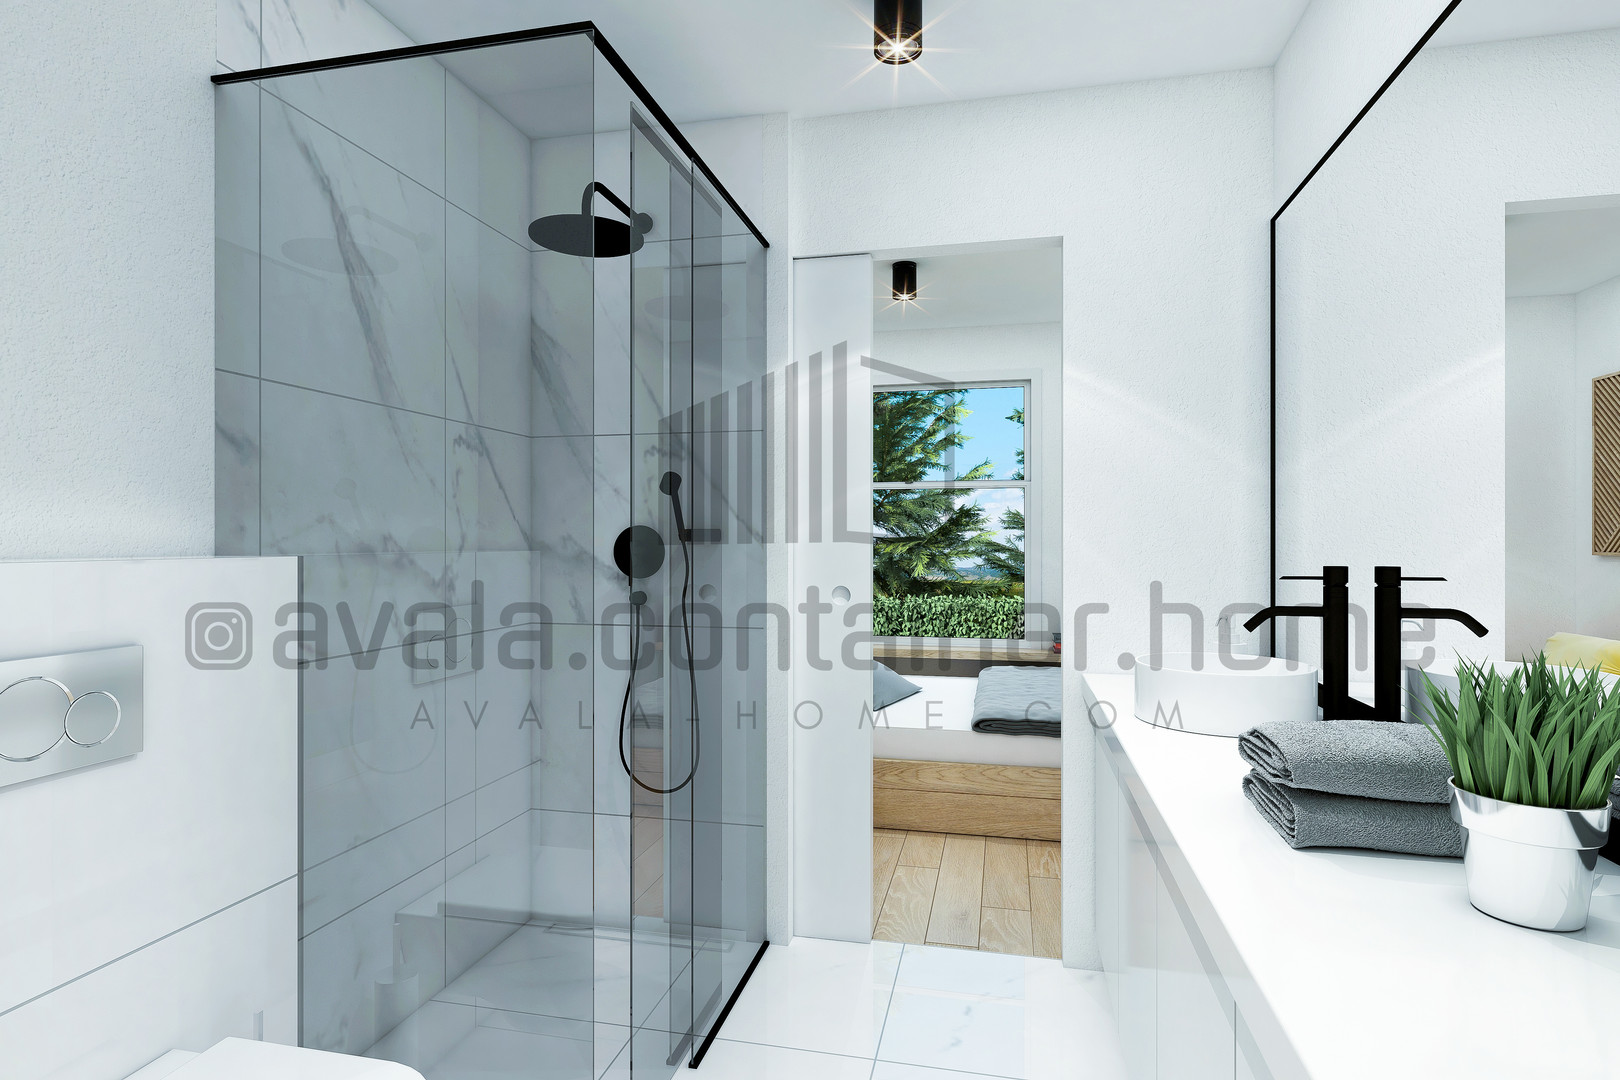 copyright-G33-bathroom.jpg